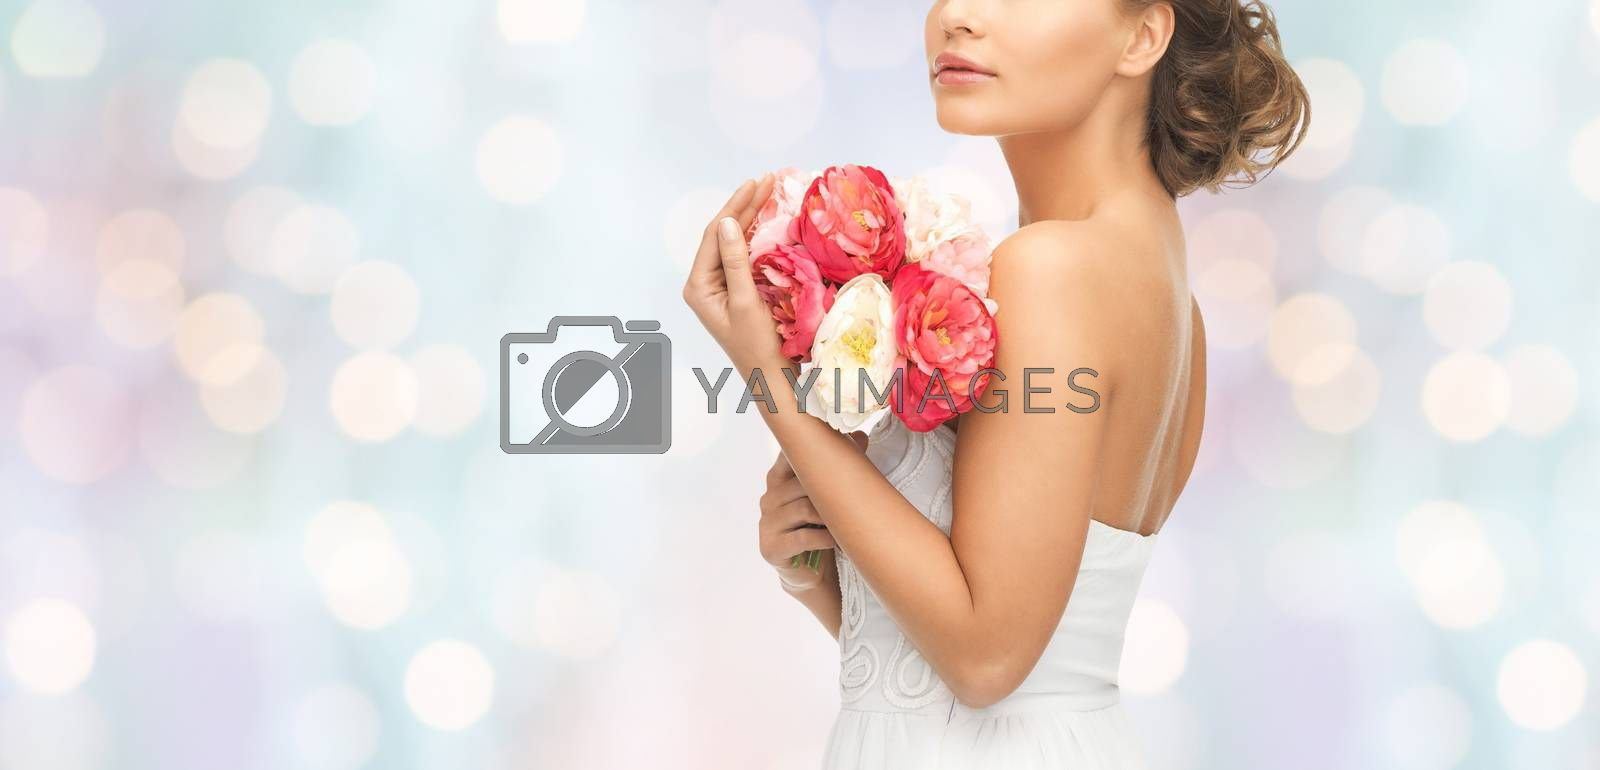 wedding, holidays, people and celebration concept- bride or woman with bouquet of flowers over blue holidays lights background